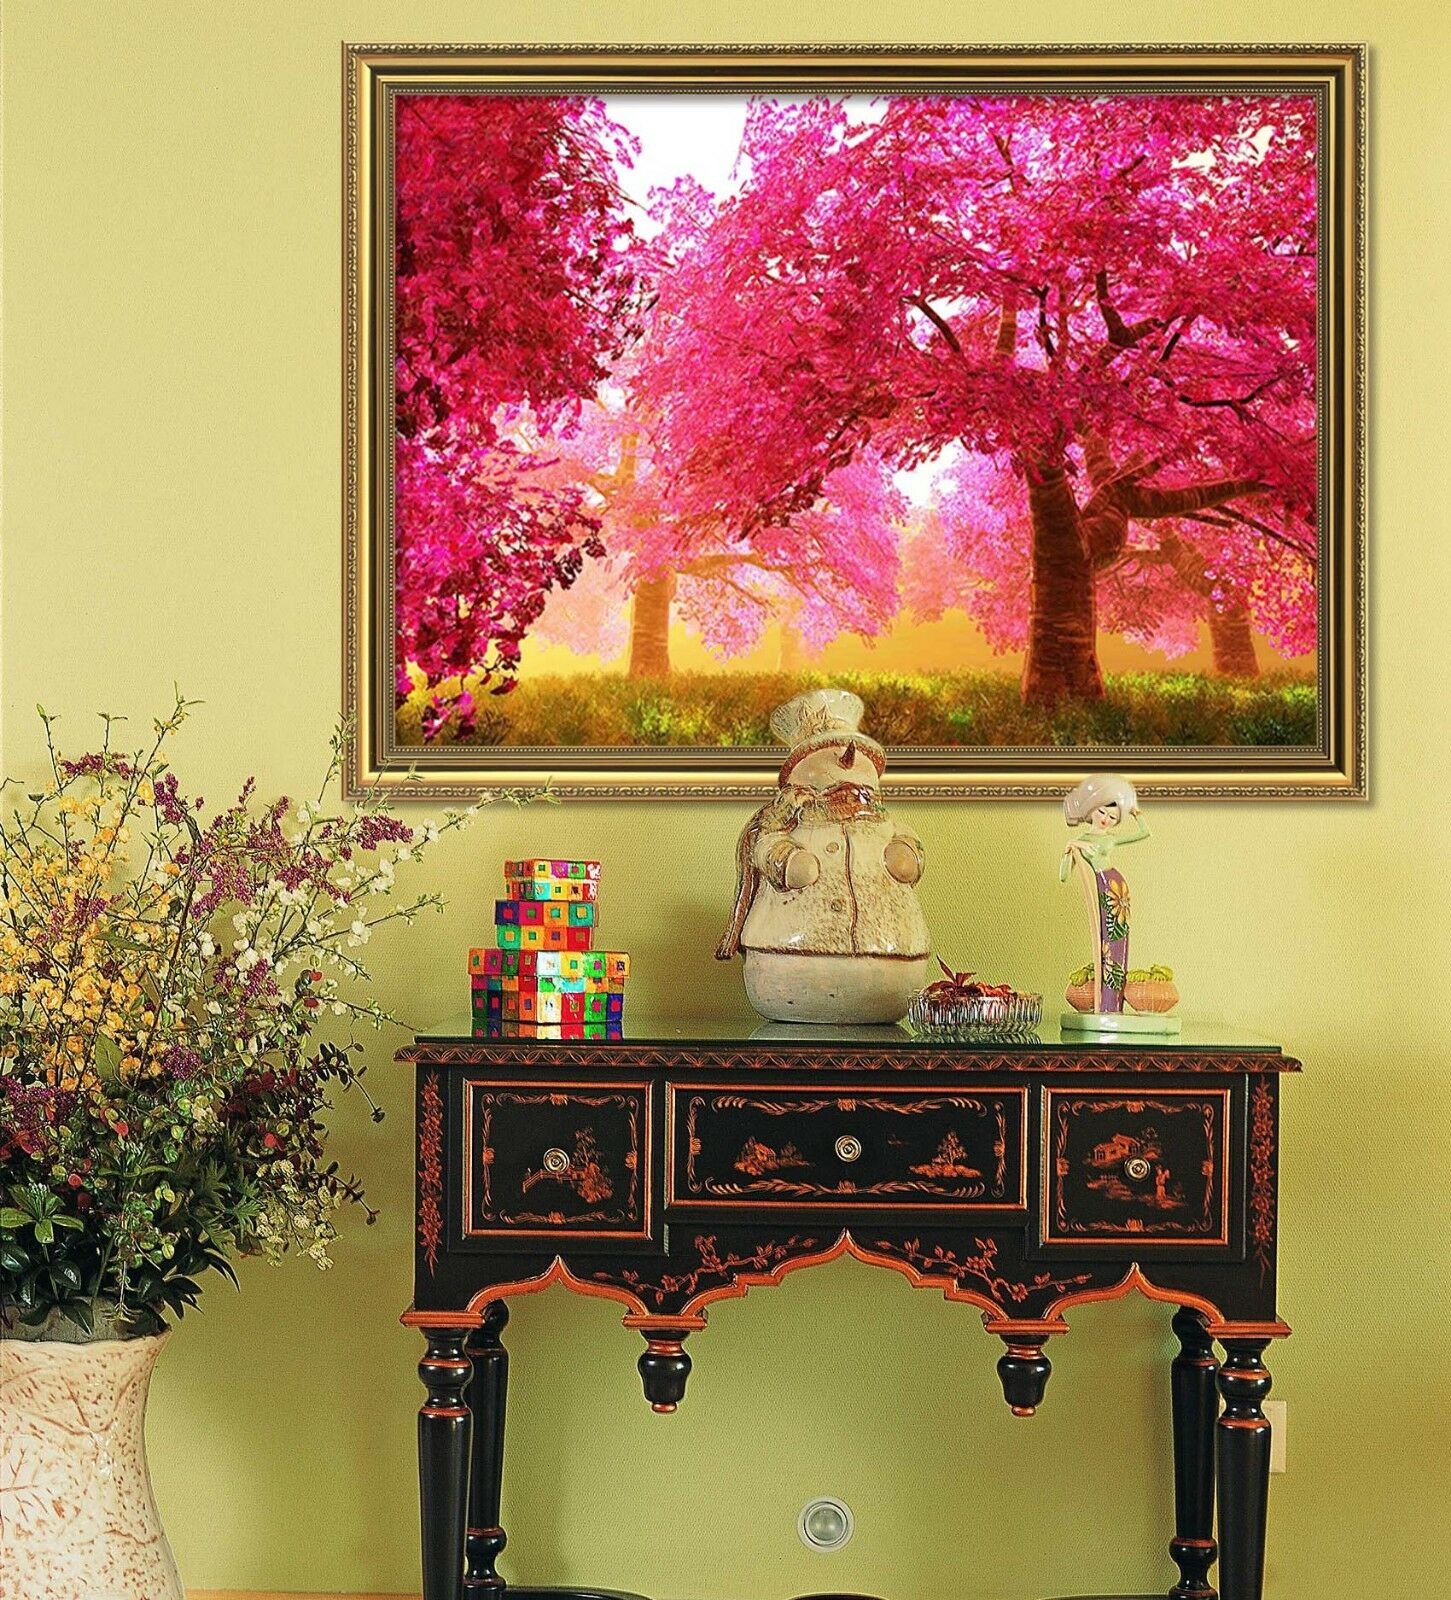 3D rouge Forest Meadow 1 Framed Poster Home Decor Print Painting Art AJ WALLPAPER